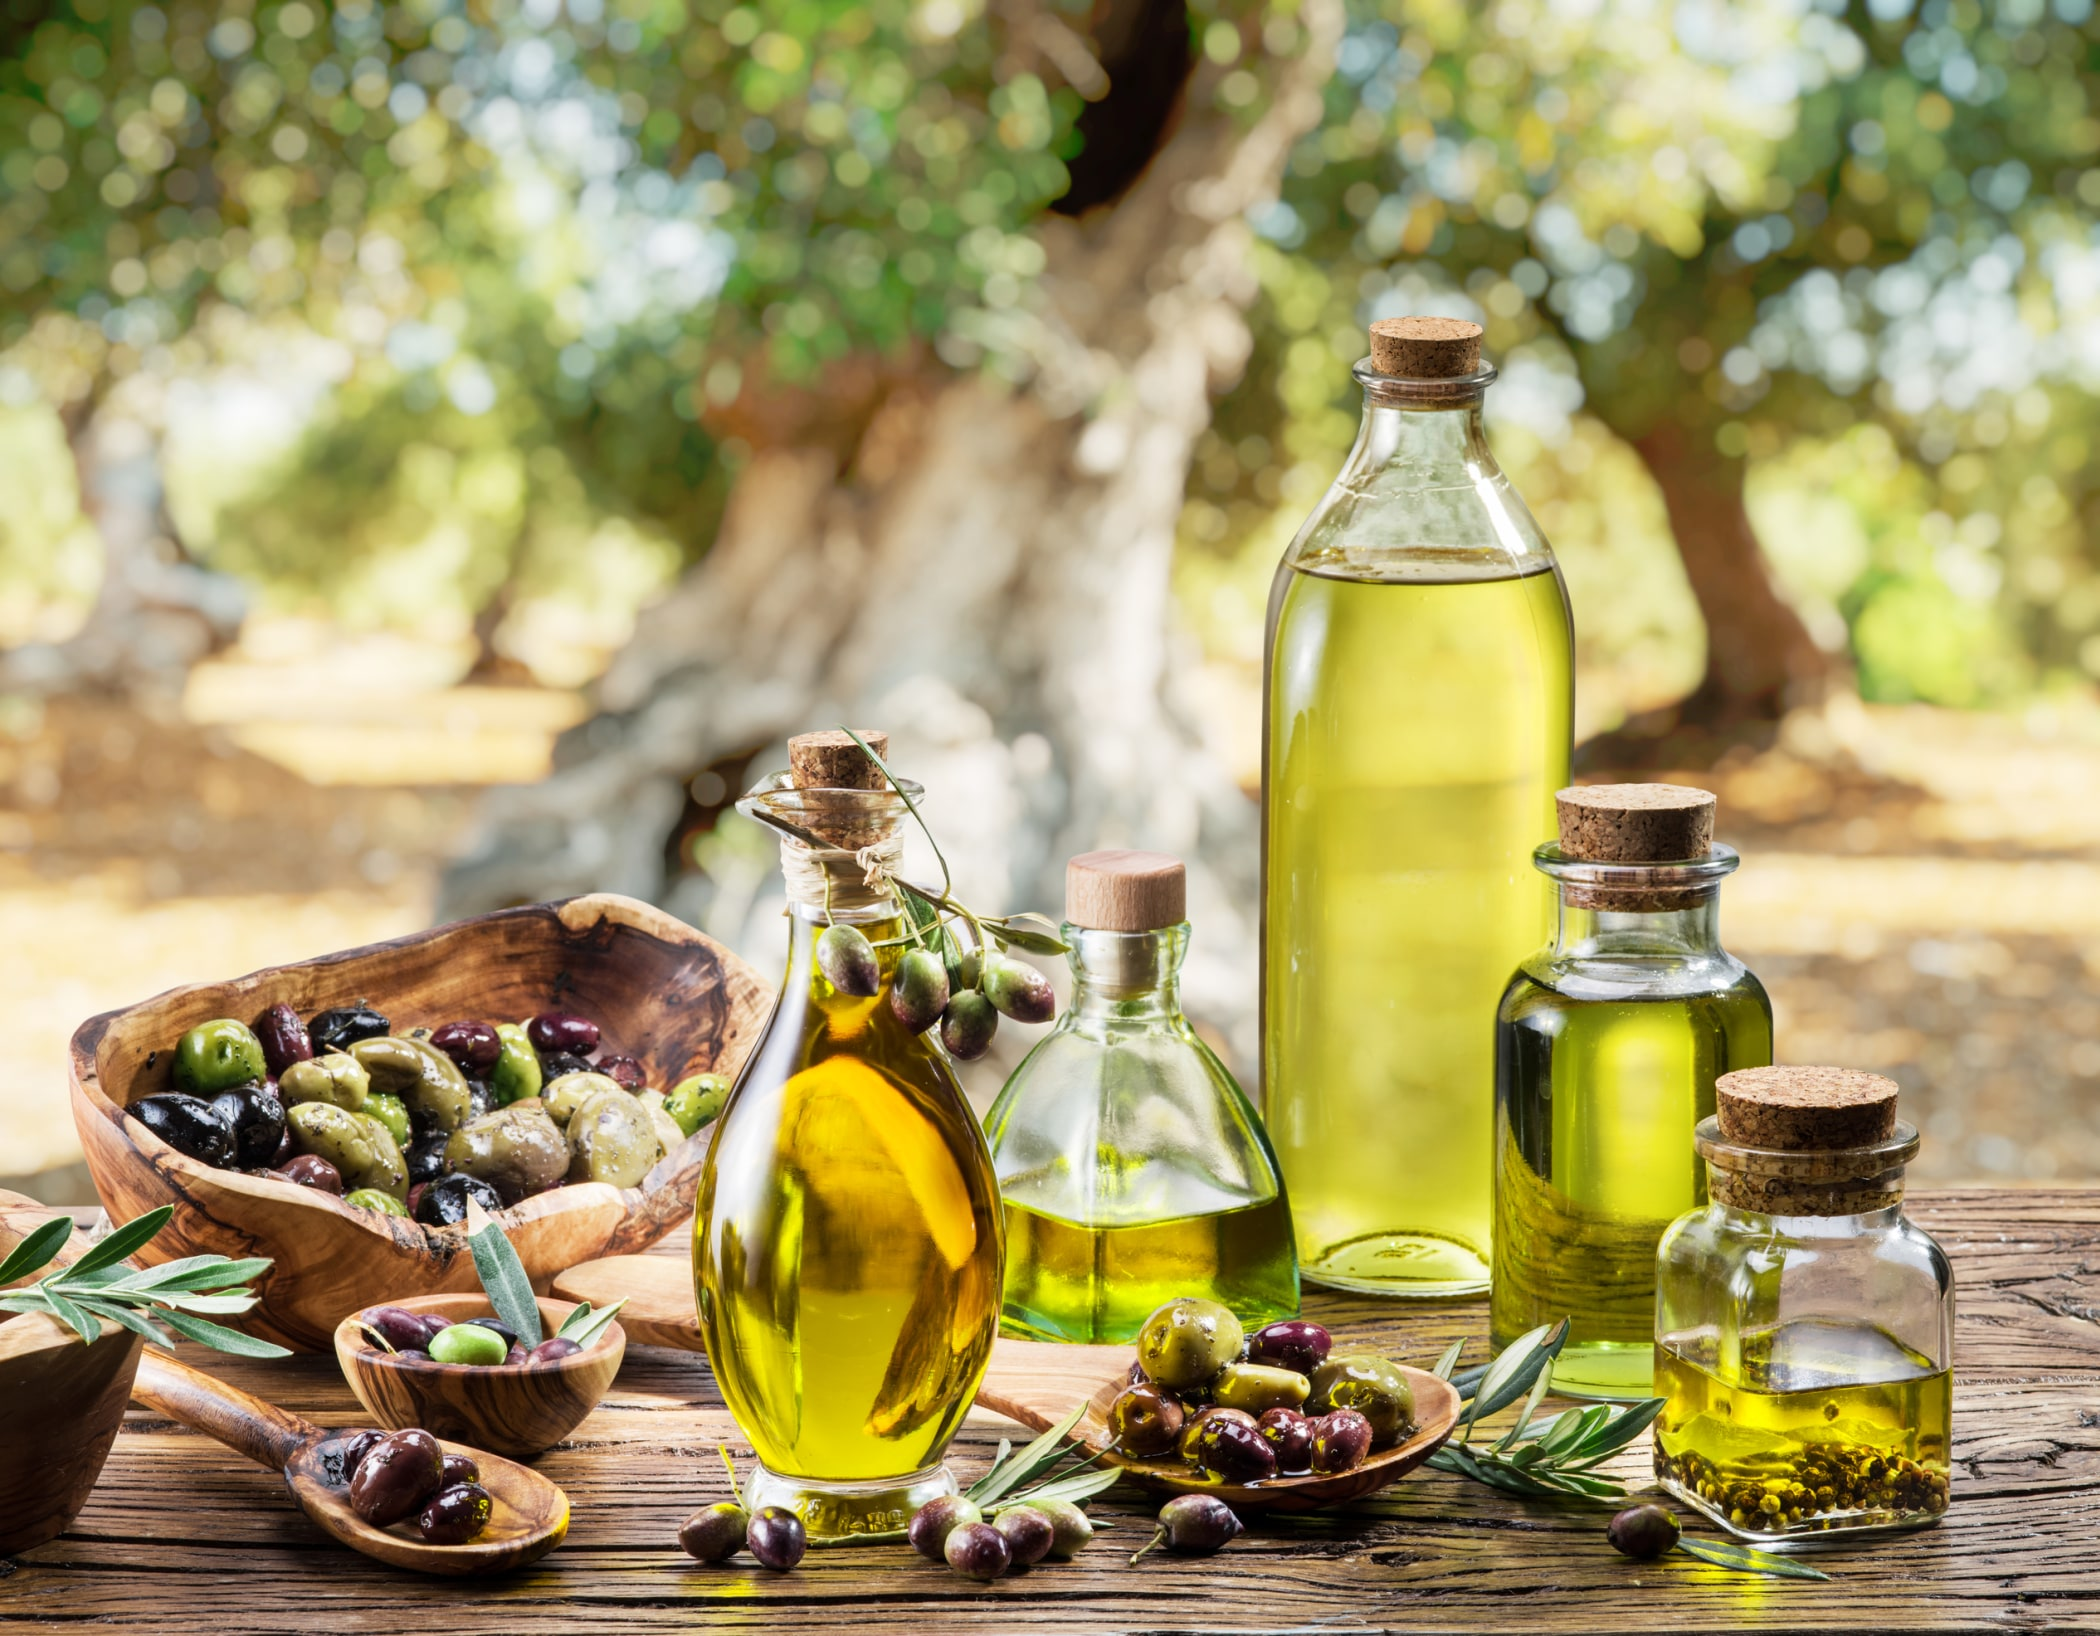 International Symposium on Olive Oil and Health